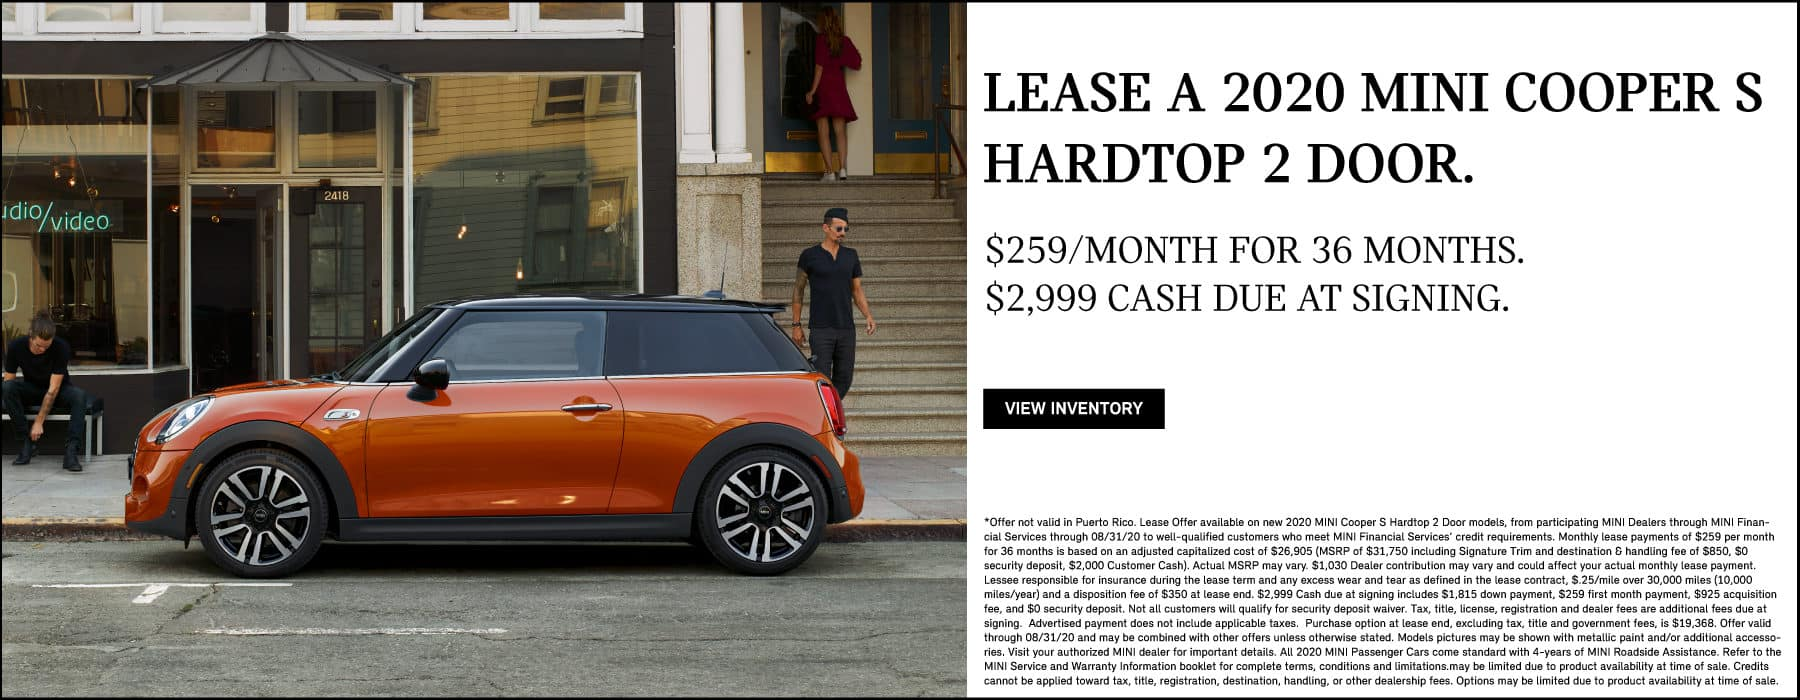 LEASE A 2020 MINI COOPER S HARDTOP 2 DOOR FOR $259 A MONTH FOR 36 MONTHS AND $2,999 CASH DUE AT SIGNING. VIEW INVENTORY BUTTON. SEE DEALER FOR COMPLETE DETAILS.